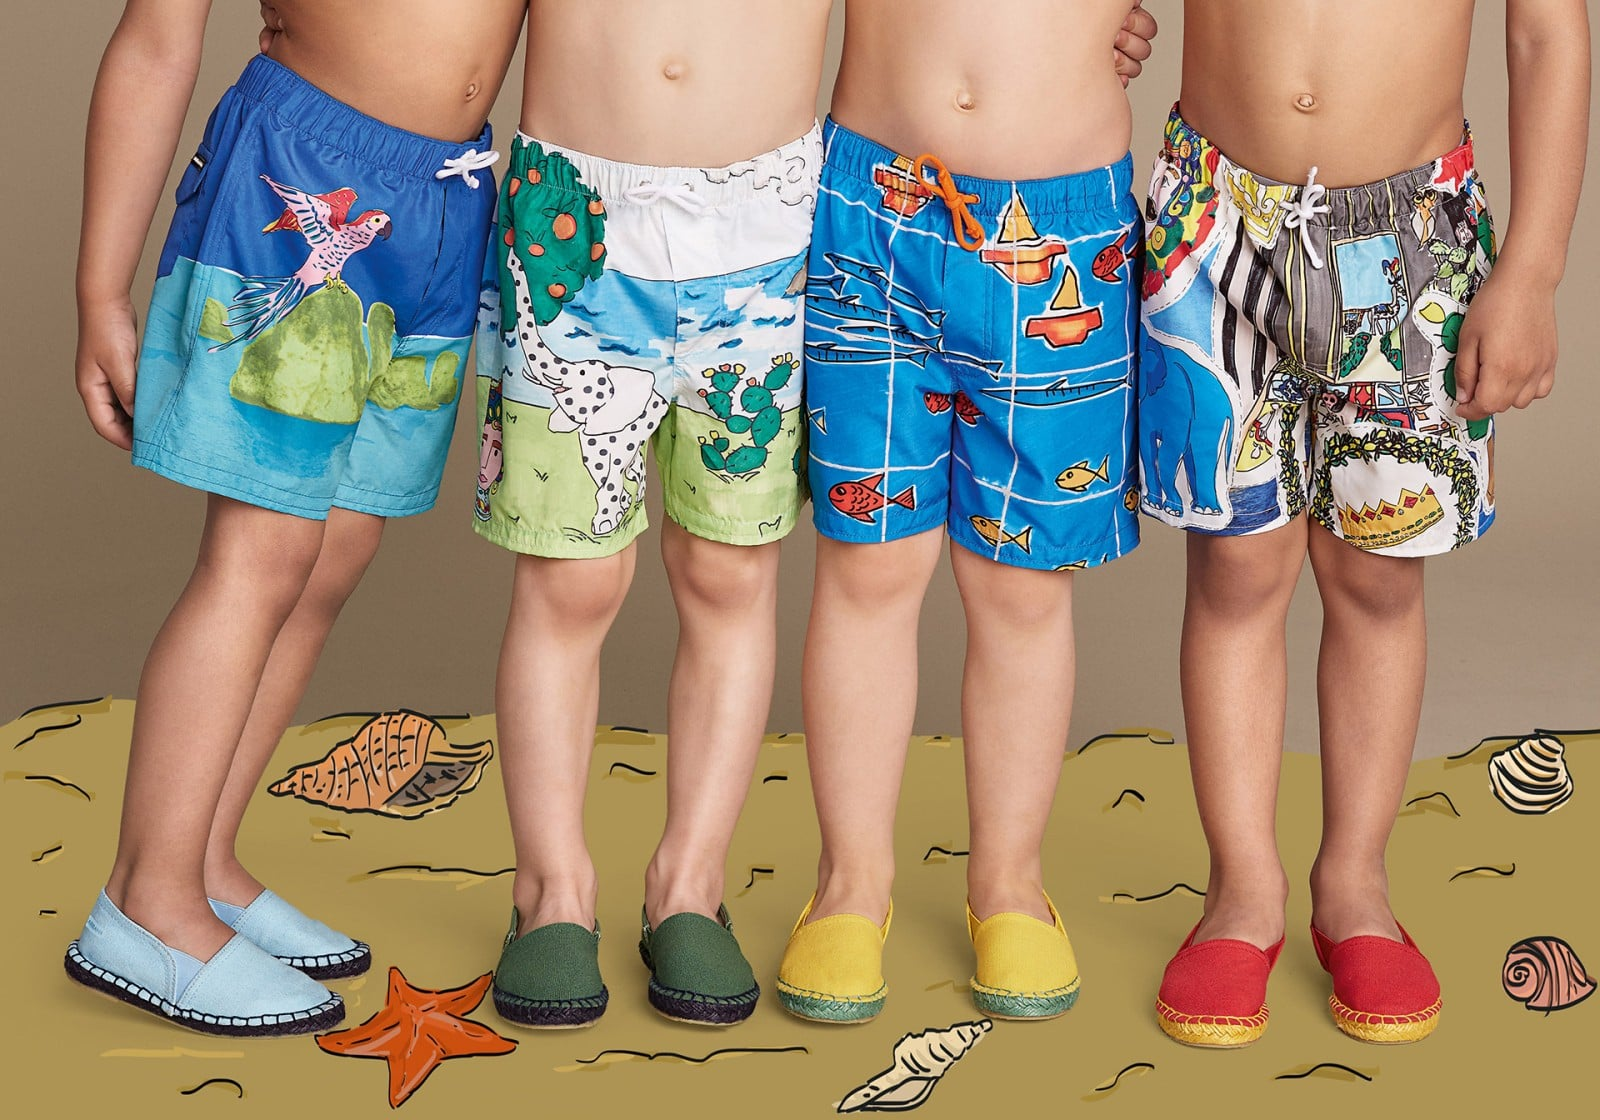 dolce-and-gabbana-summer-2016-child-collection-1021-1600x1120.jpg